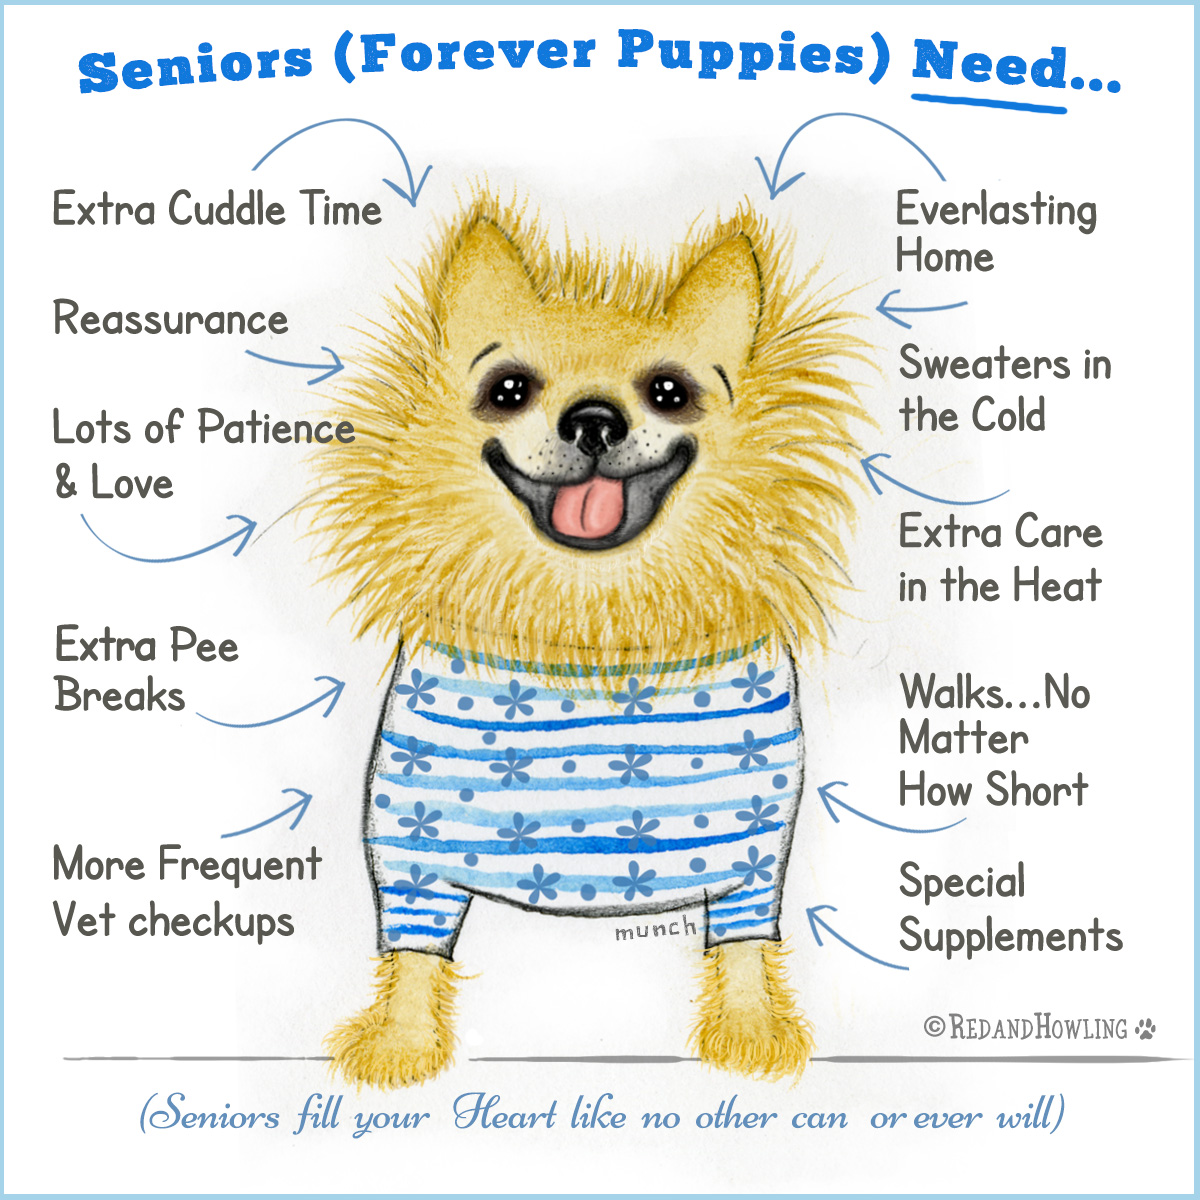 Seniors (Forever Puppies) Need...